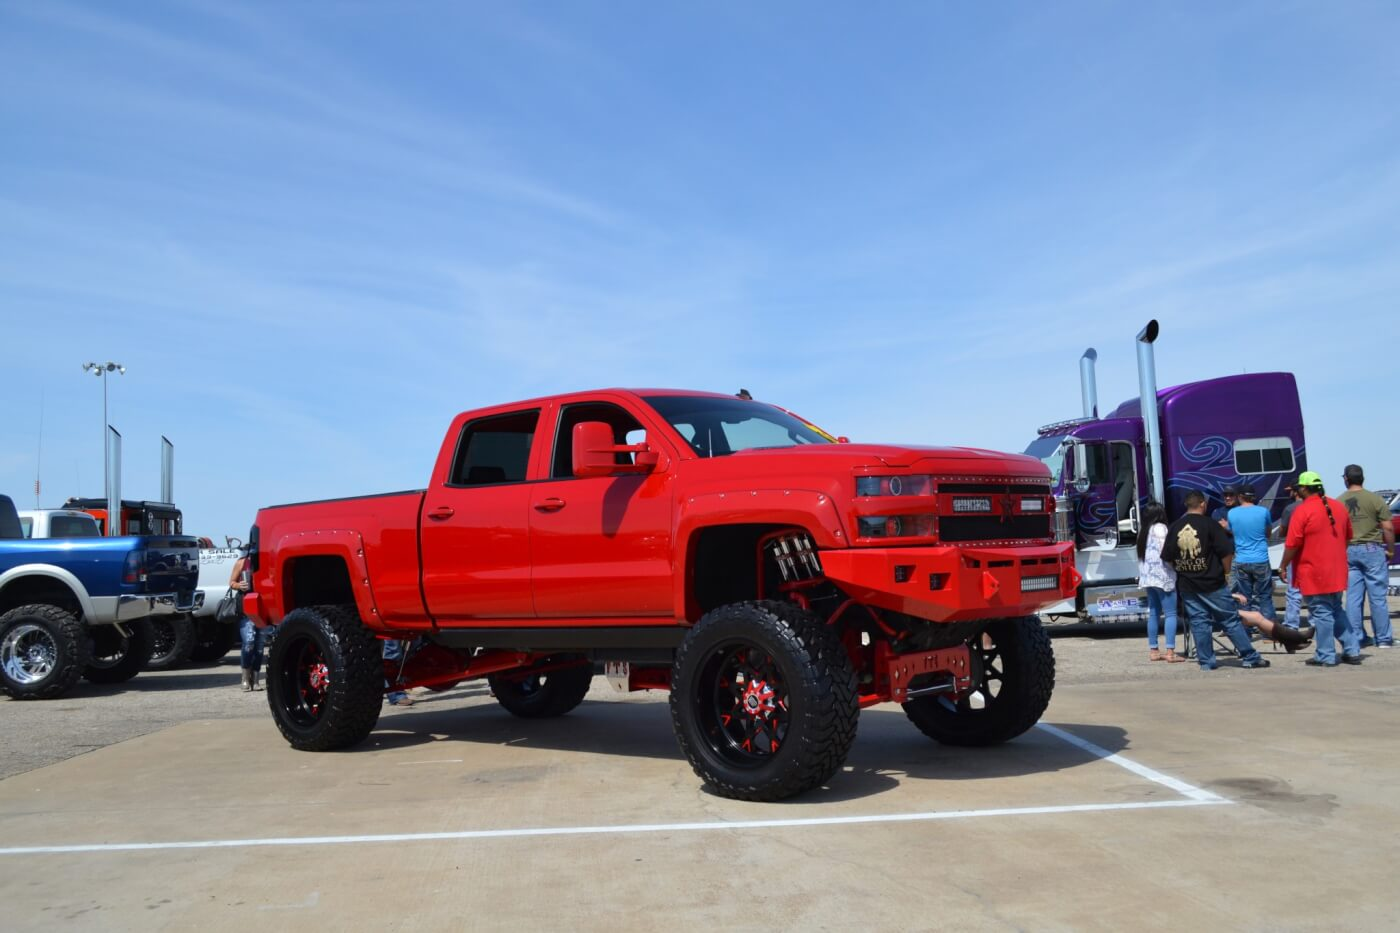 On Saturday, many trucks owners polished up their rigs to a bright sheen for the show 'n shine competition. This red Duramax-powered rig was one of the cleanest and most tastefully modified rides in attendance.